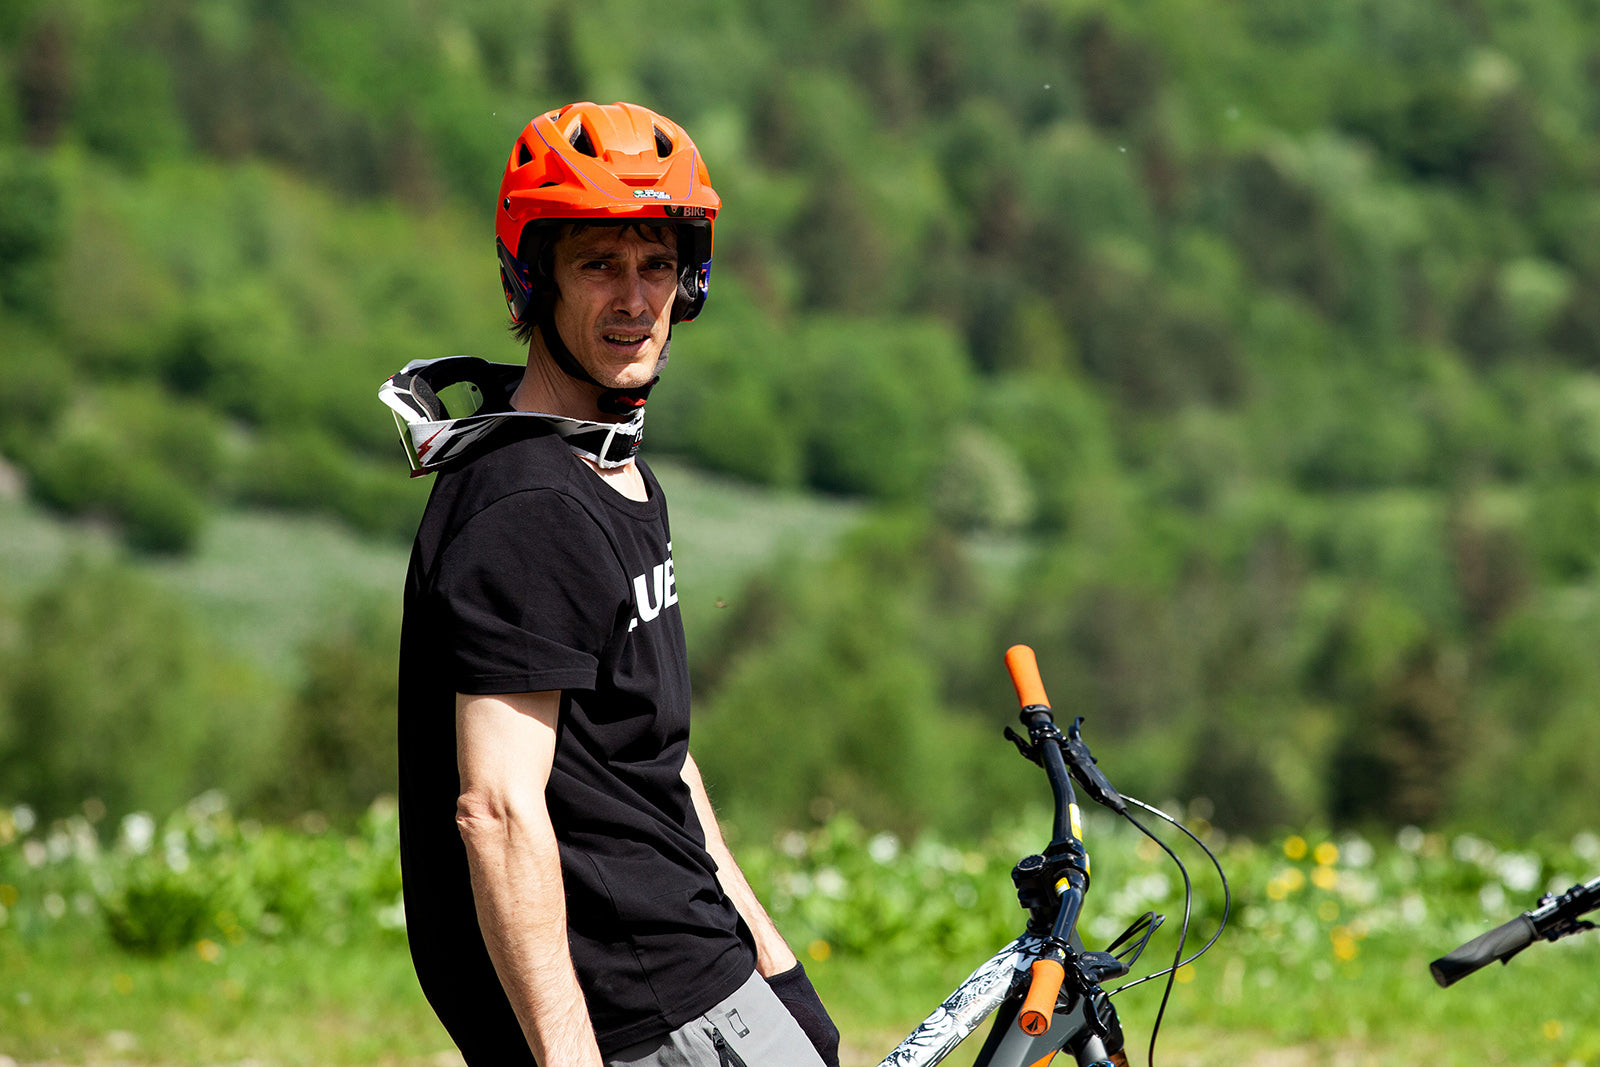 Marc Gómez - Co-Founder of AranBikeParks. FreeSki trainer at the Val d'Aran Technification Center. Photography: Júlia Miralles